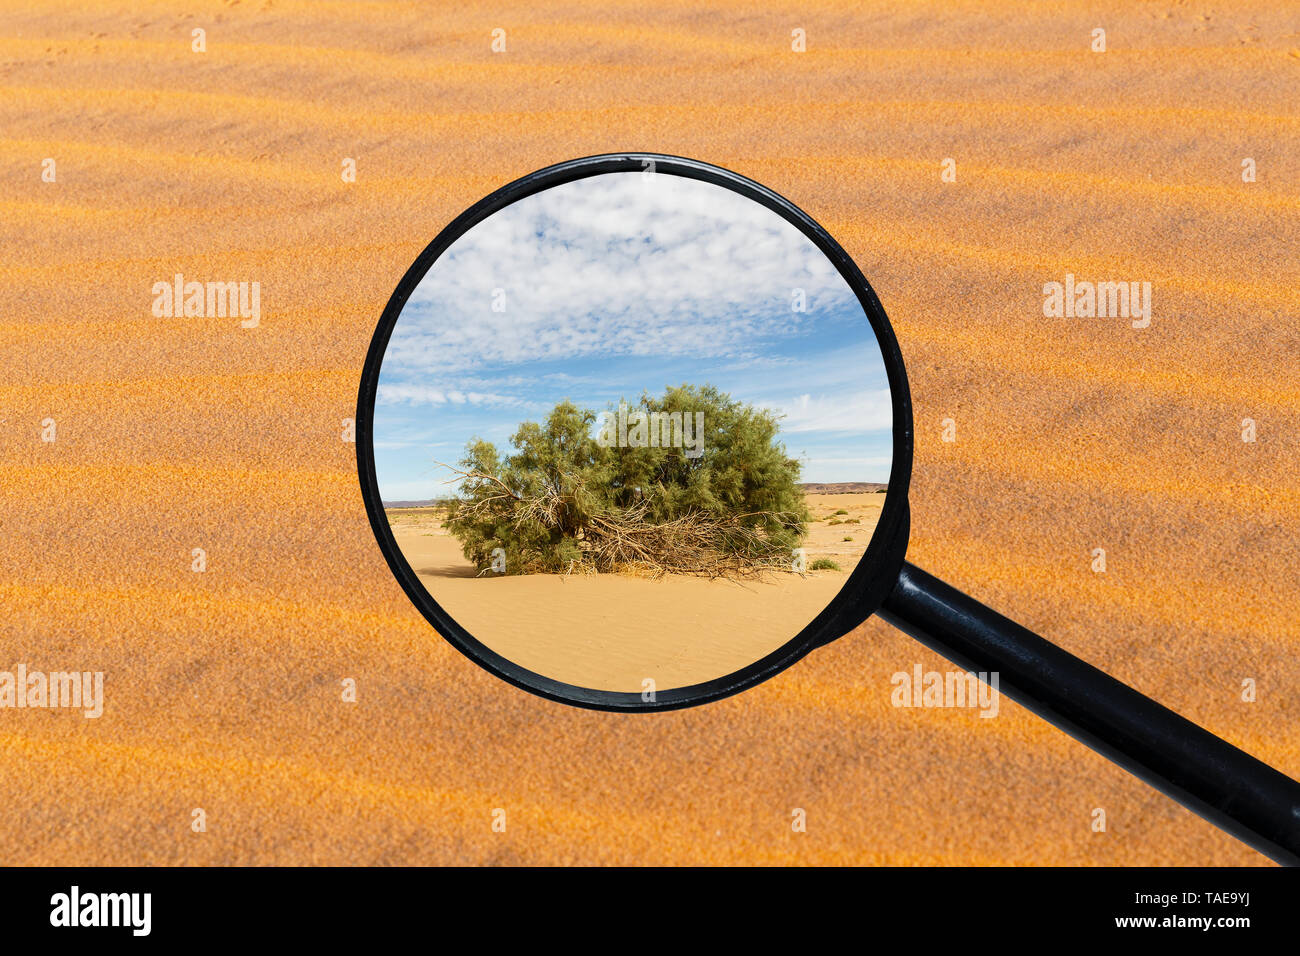 green shrub in the Sahara desert, view through a magnifying glass against the background of sand - Stock Image